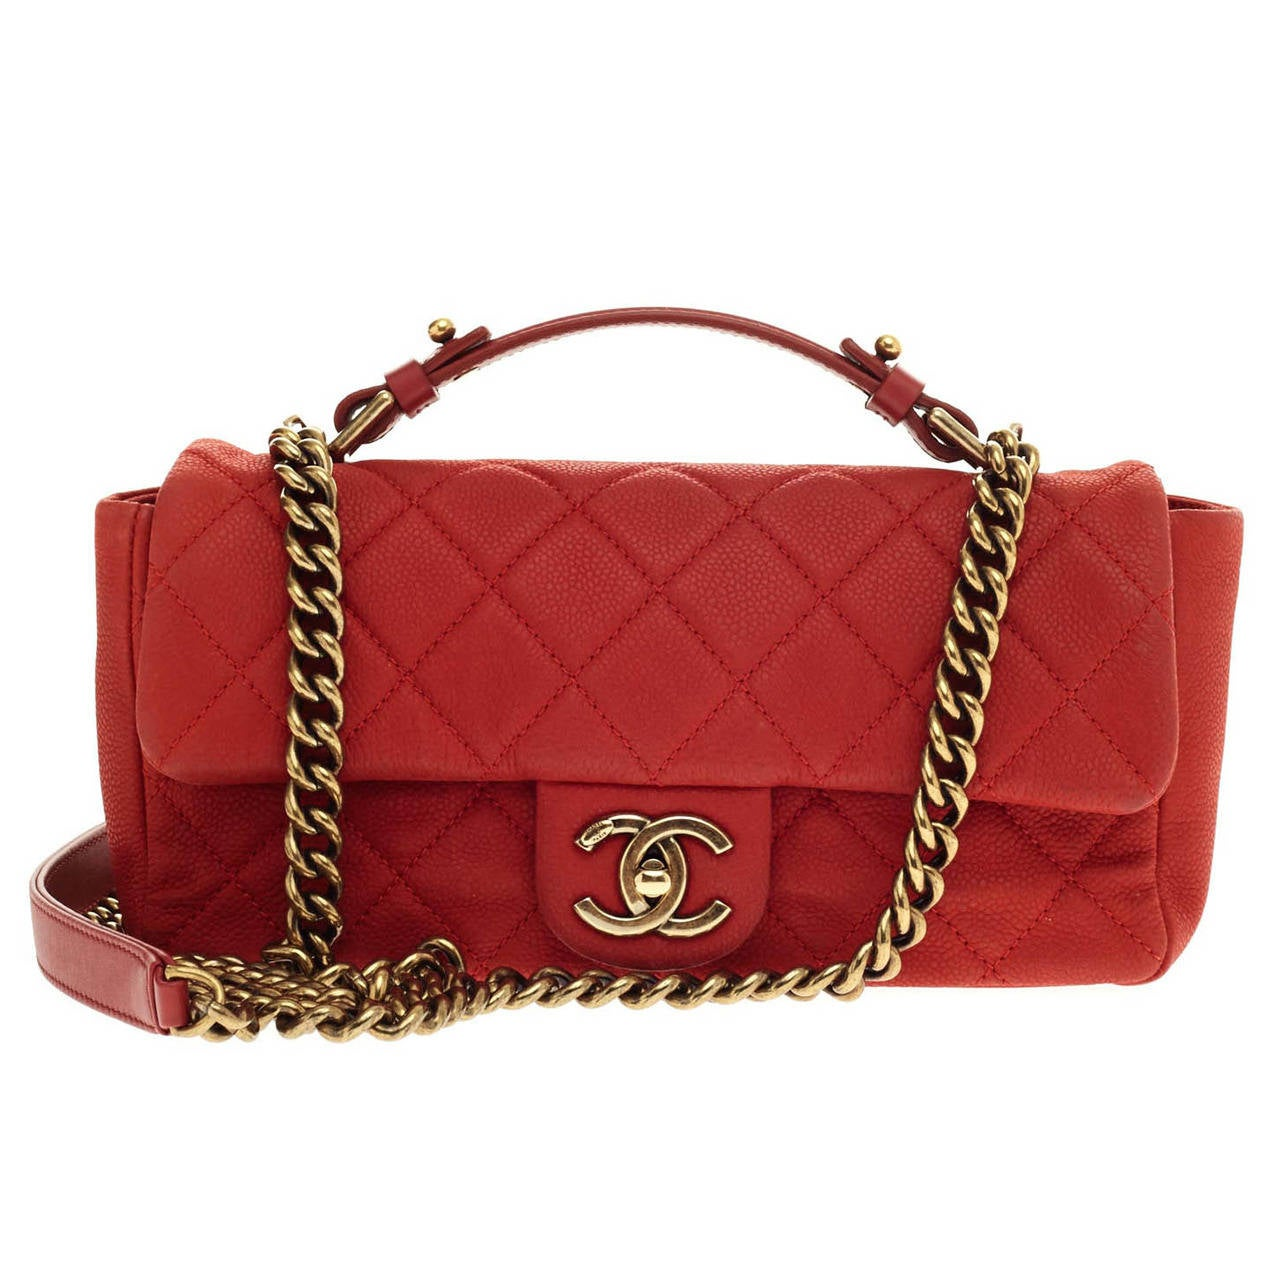 Chanel Chic Handle Flap Bag Quilted Caviar Small At 1stdibs